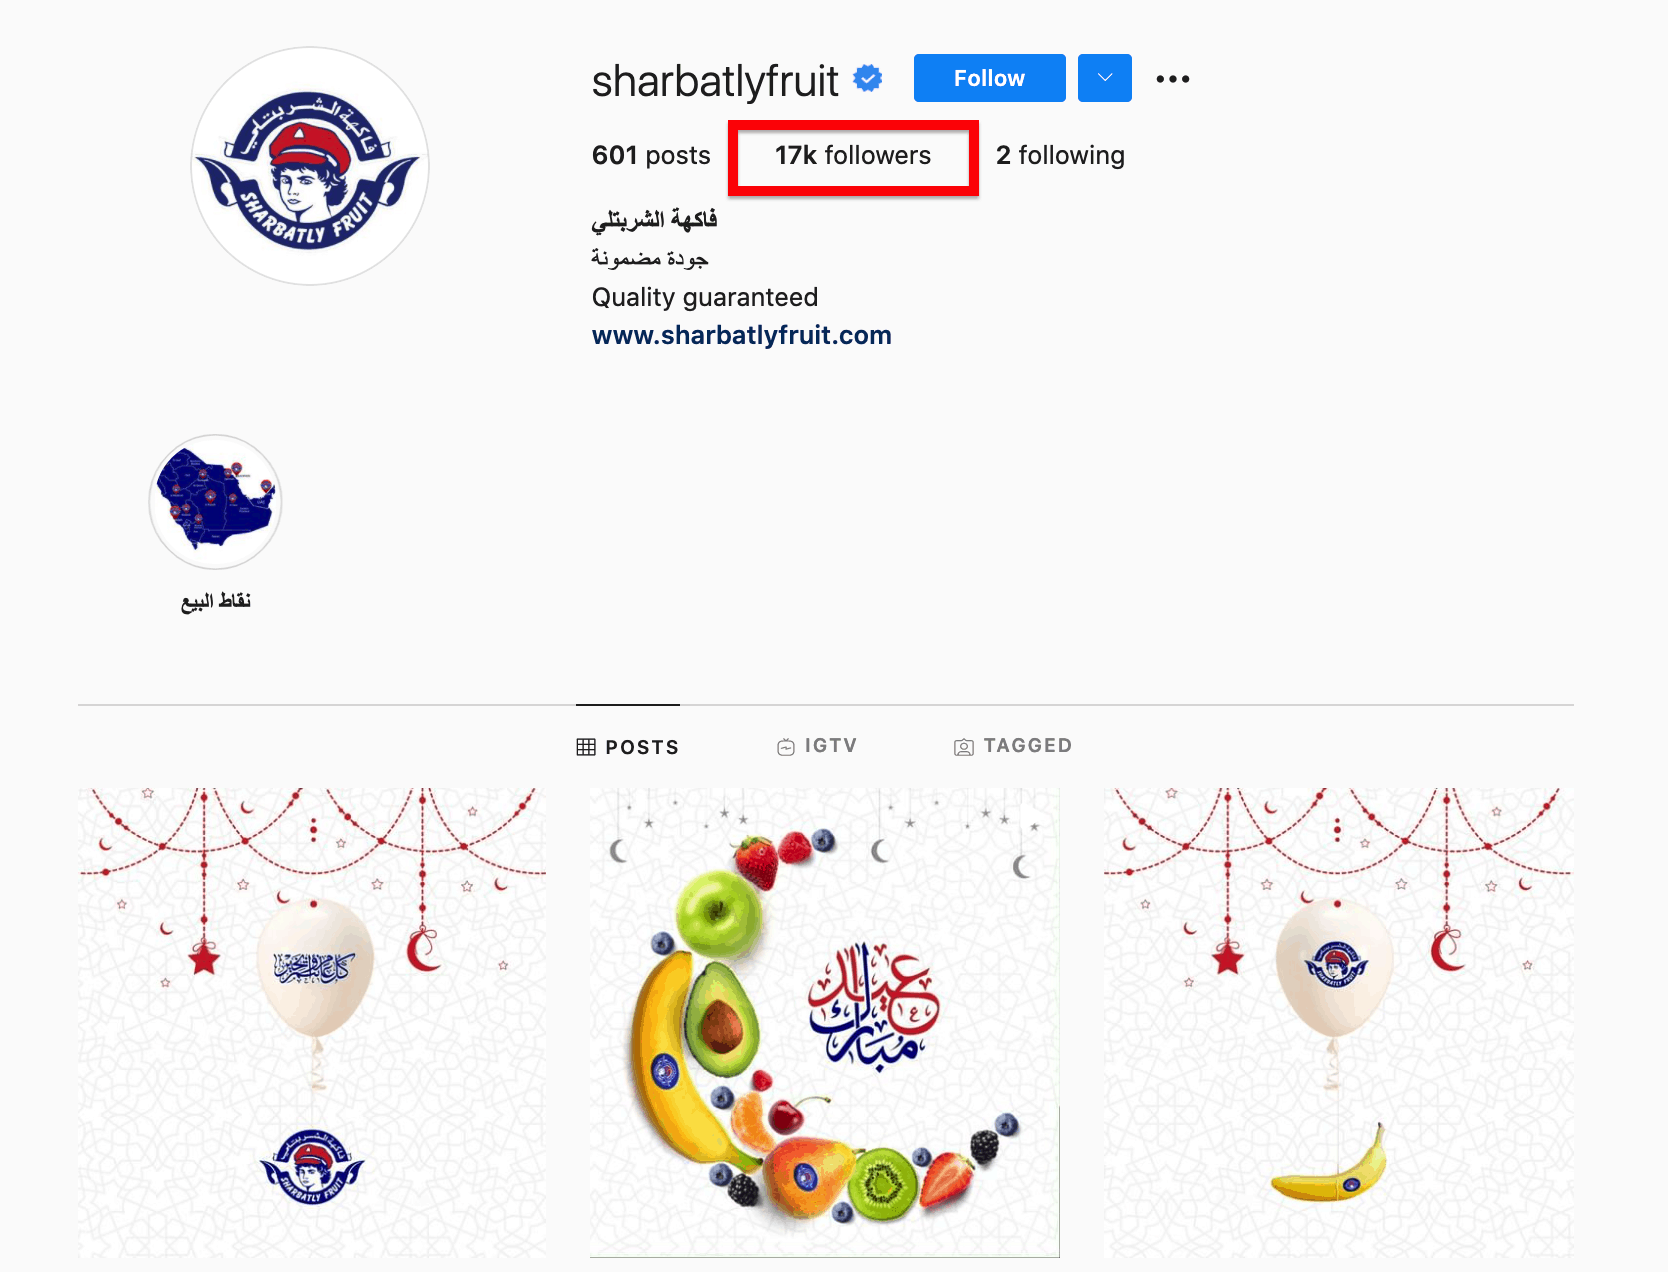 Sharbatly fruit Instagram profile with 17k followers highlighted